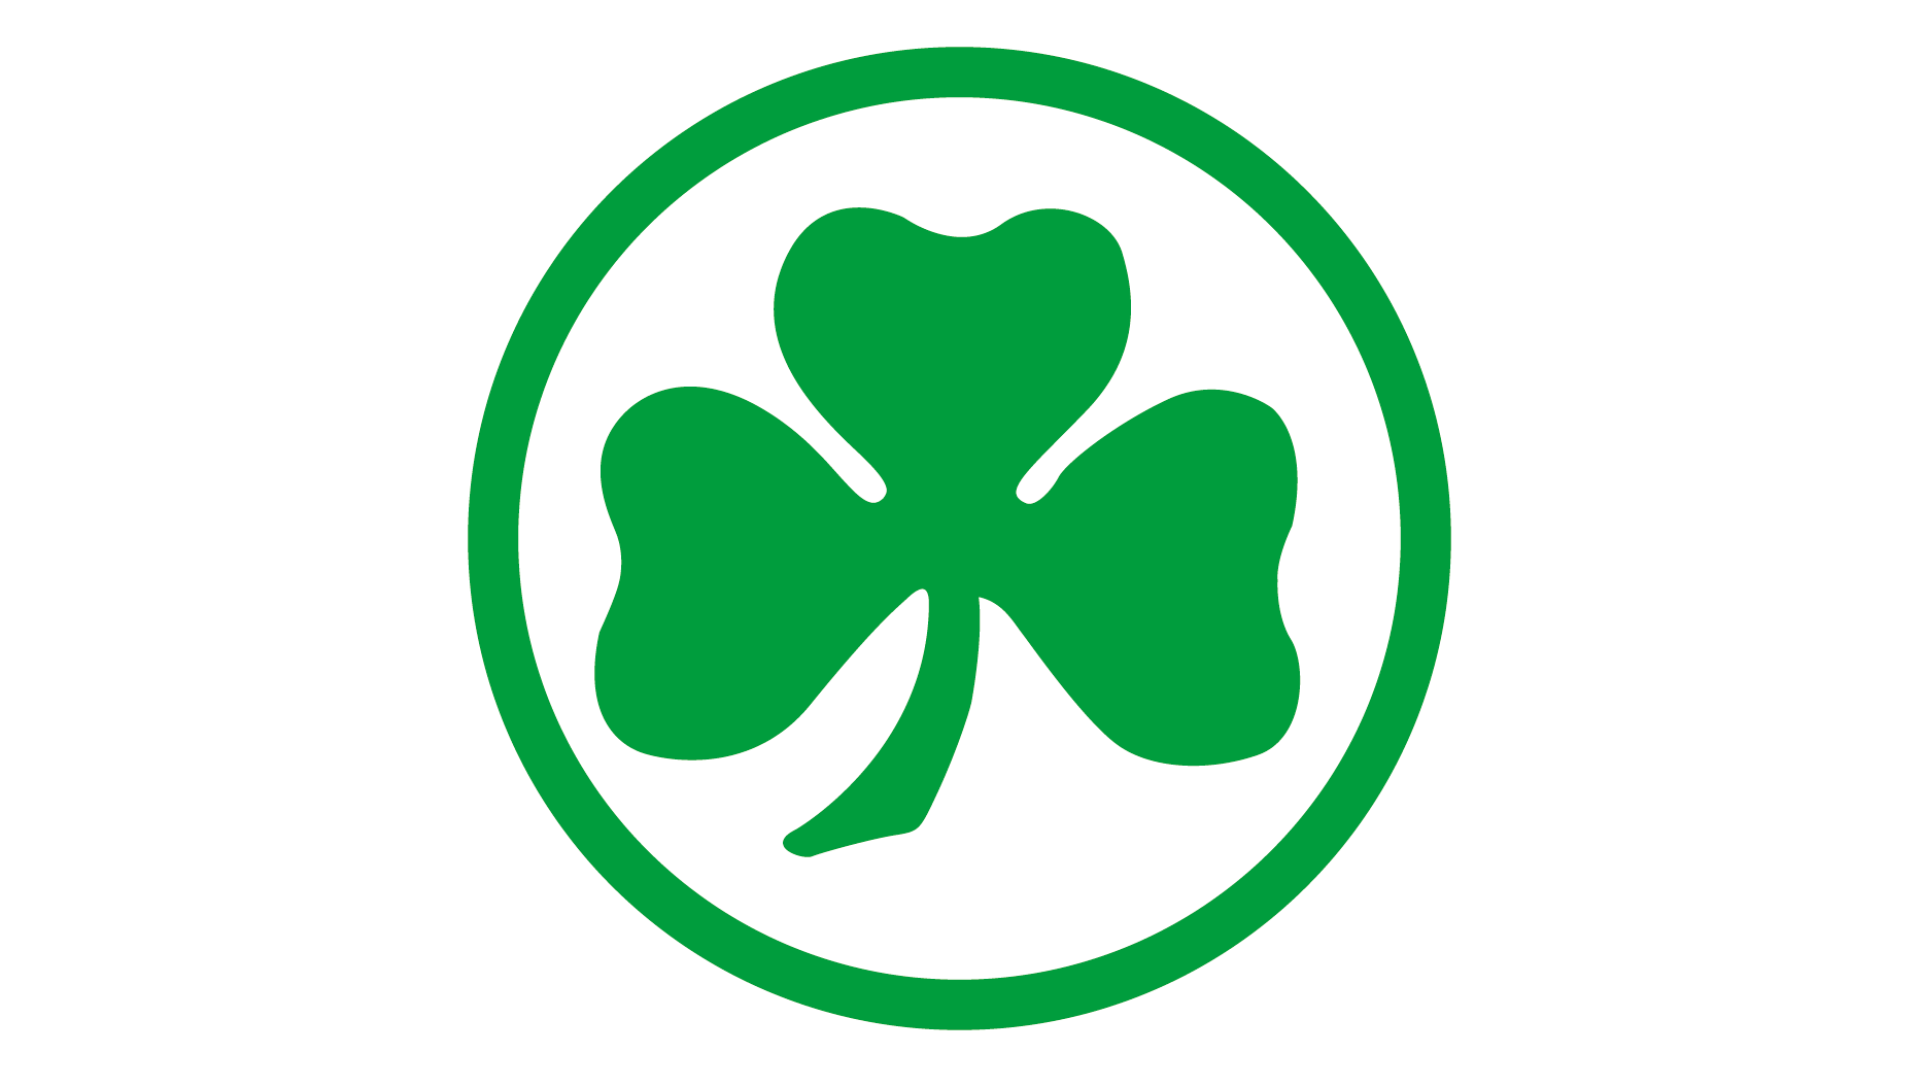 SpVgg Greuther Furth